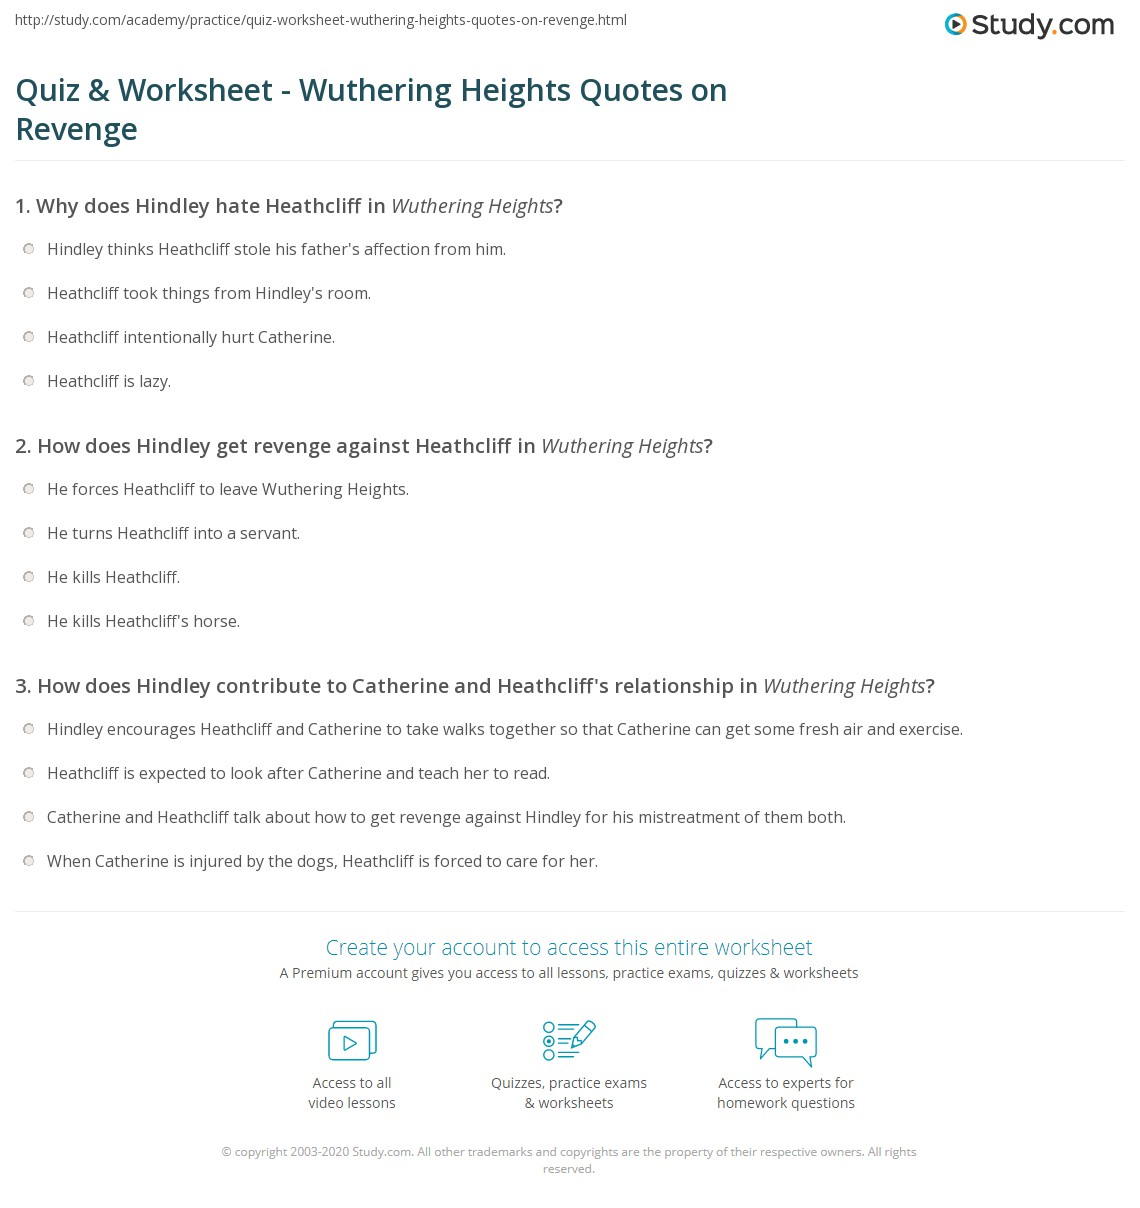 quiz worksheet wuthering heights quotes on revenge com print wuthering heights quotes about revenge worksheet